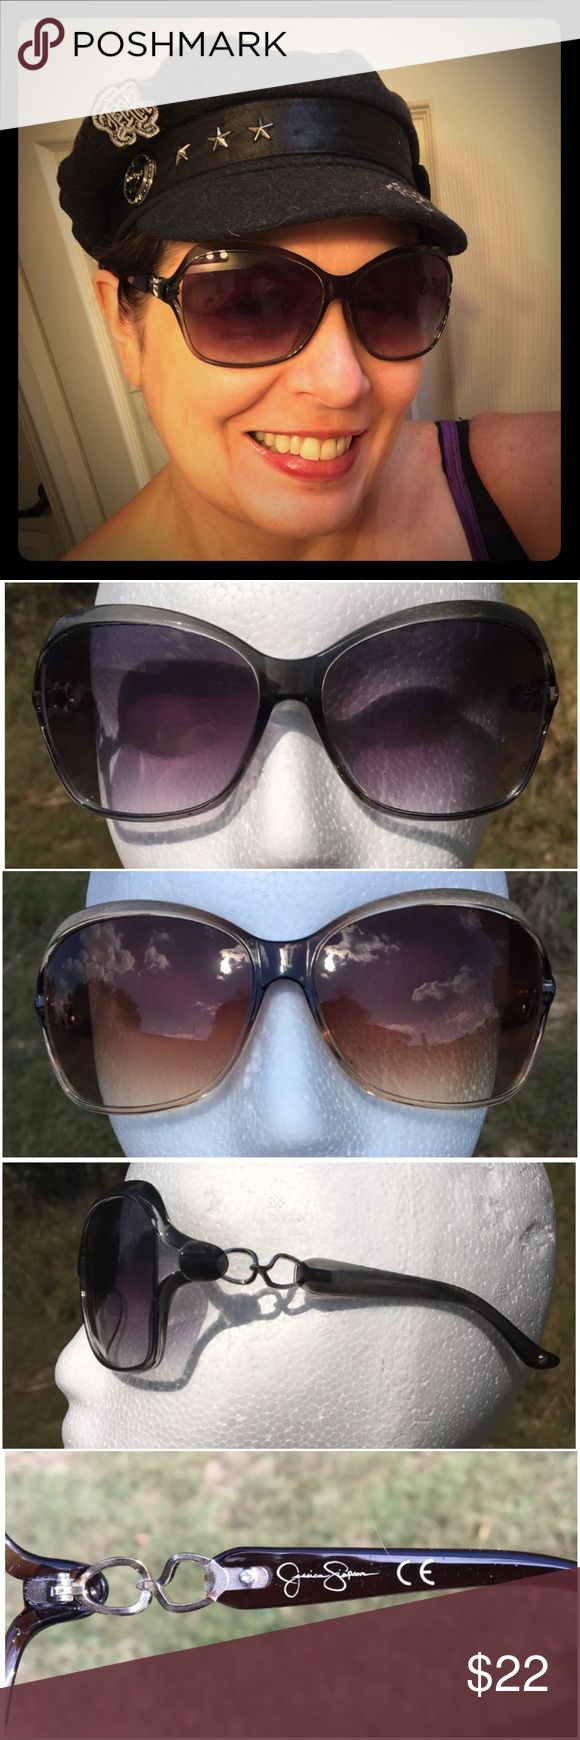 Jessica Simpson SUNNIES ☀️☀️ TWO PAIR SUNGLASSES Two pair JESSICA SIMPSON - the sunglasses are identical styles, just different colors - one brownish, one grayish. NO CASES. Excellent condition - no scratches or other issues to note. Jessica Simpson Accessories Sunglasses